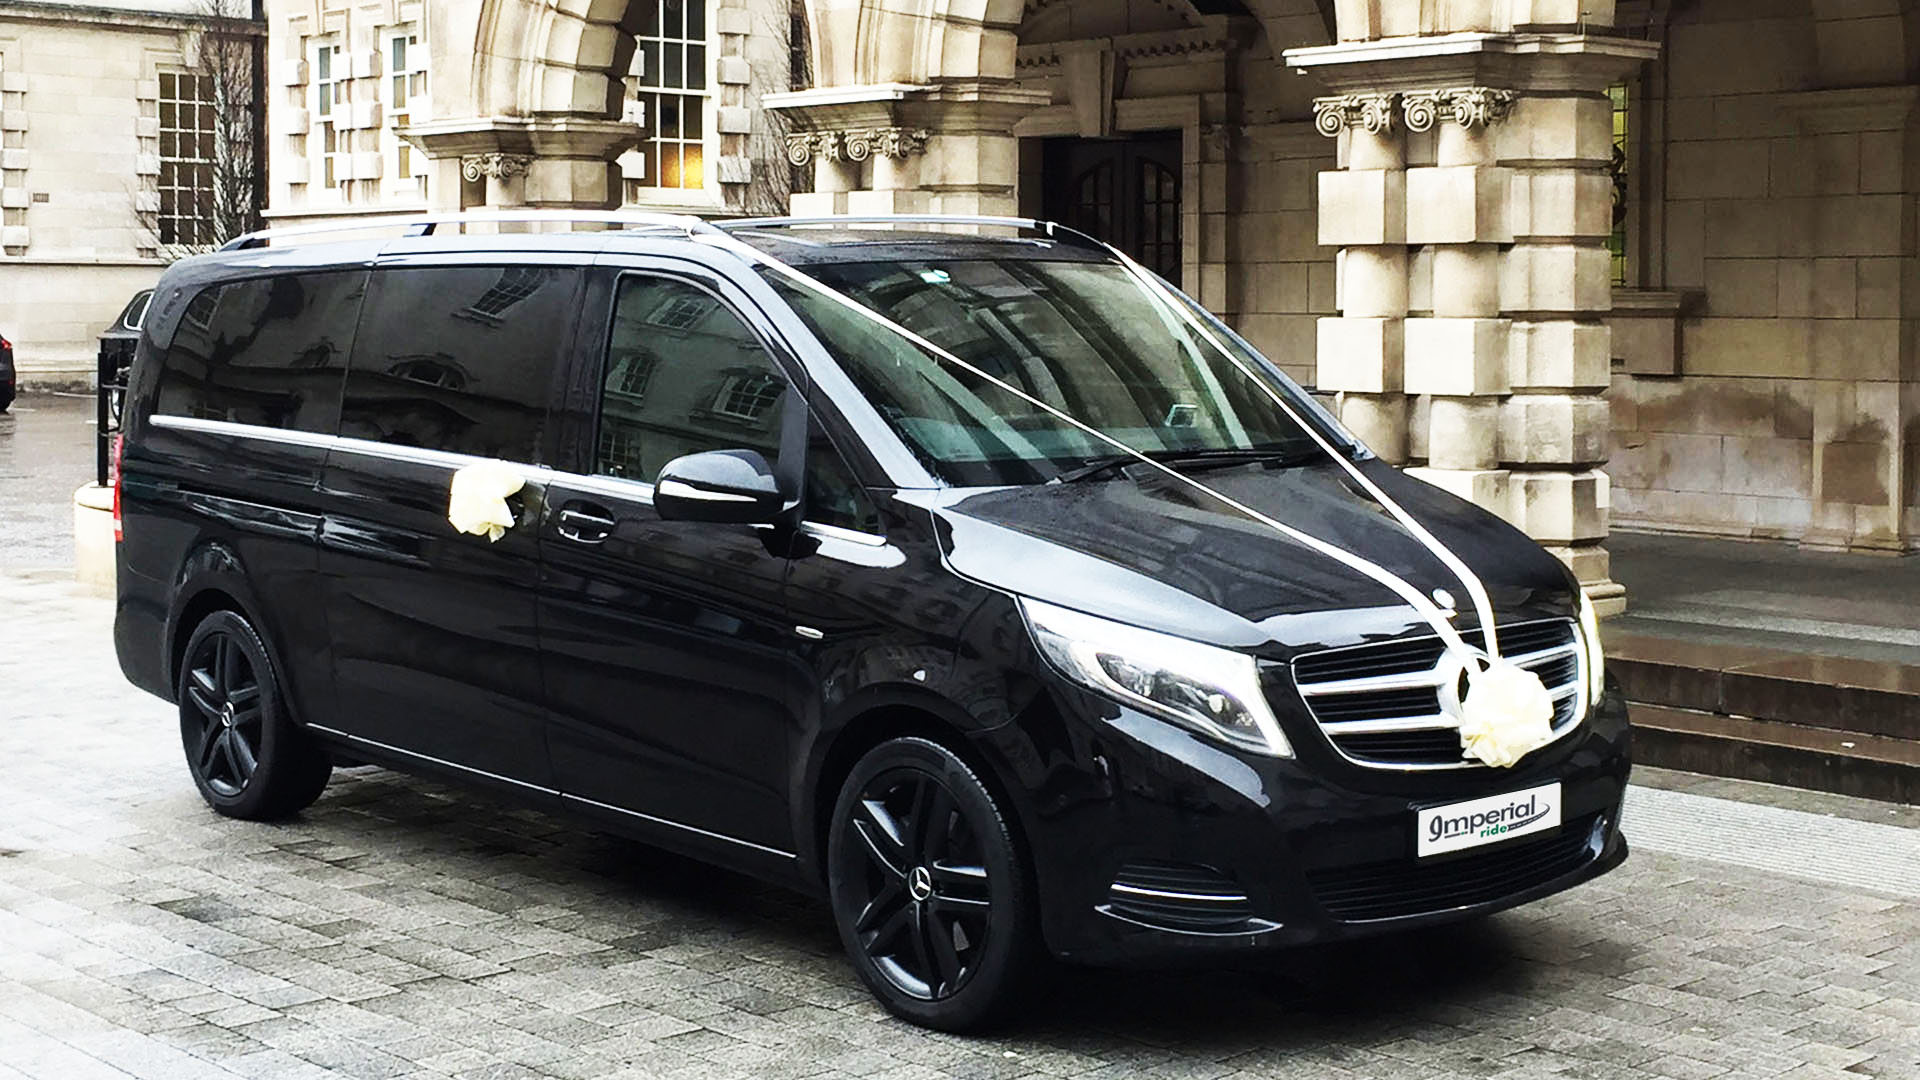 v-class-wedding-hire-in-southwark